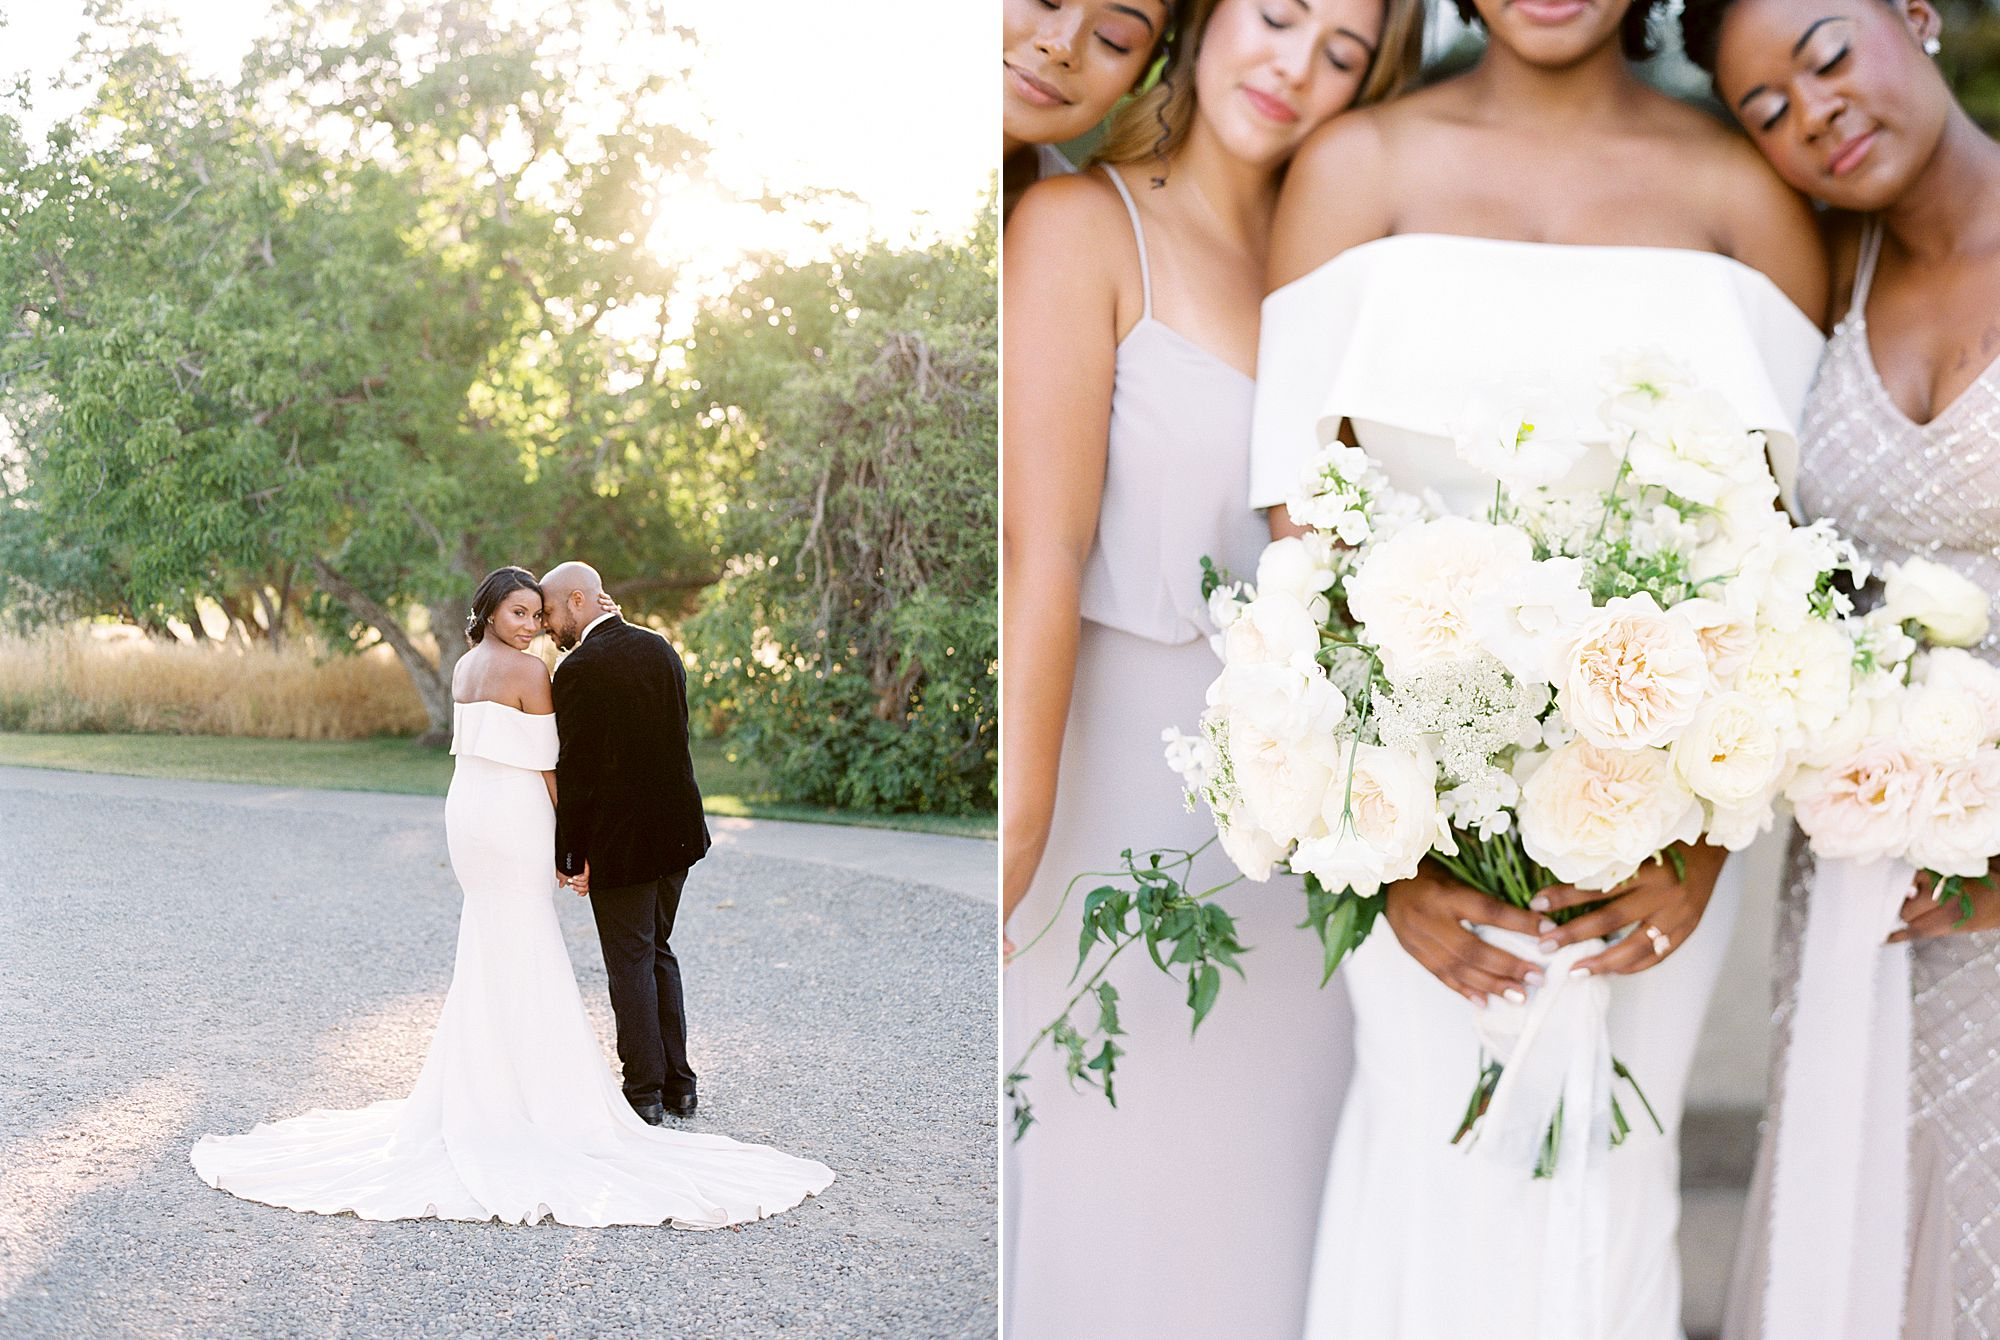 Park Winters Micro-Wedding Inspiration on Style Me Pretty - Stephanie Teague Events - Ashley Baumgartner - Park Winters Wedding - Black Tie Wedding - Micro-Wedding Sacramento Photographer_0023.jpg